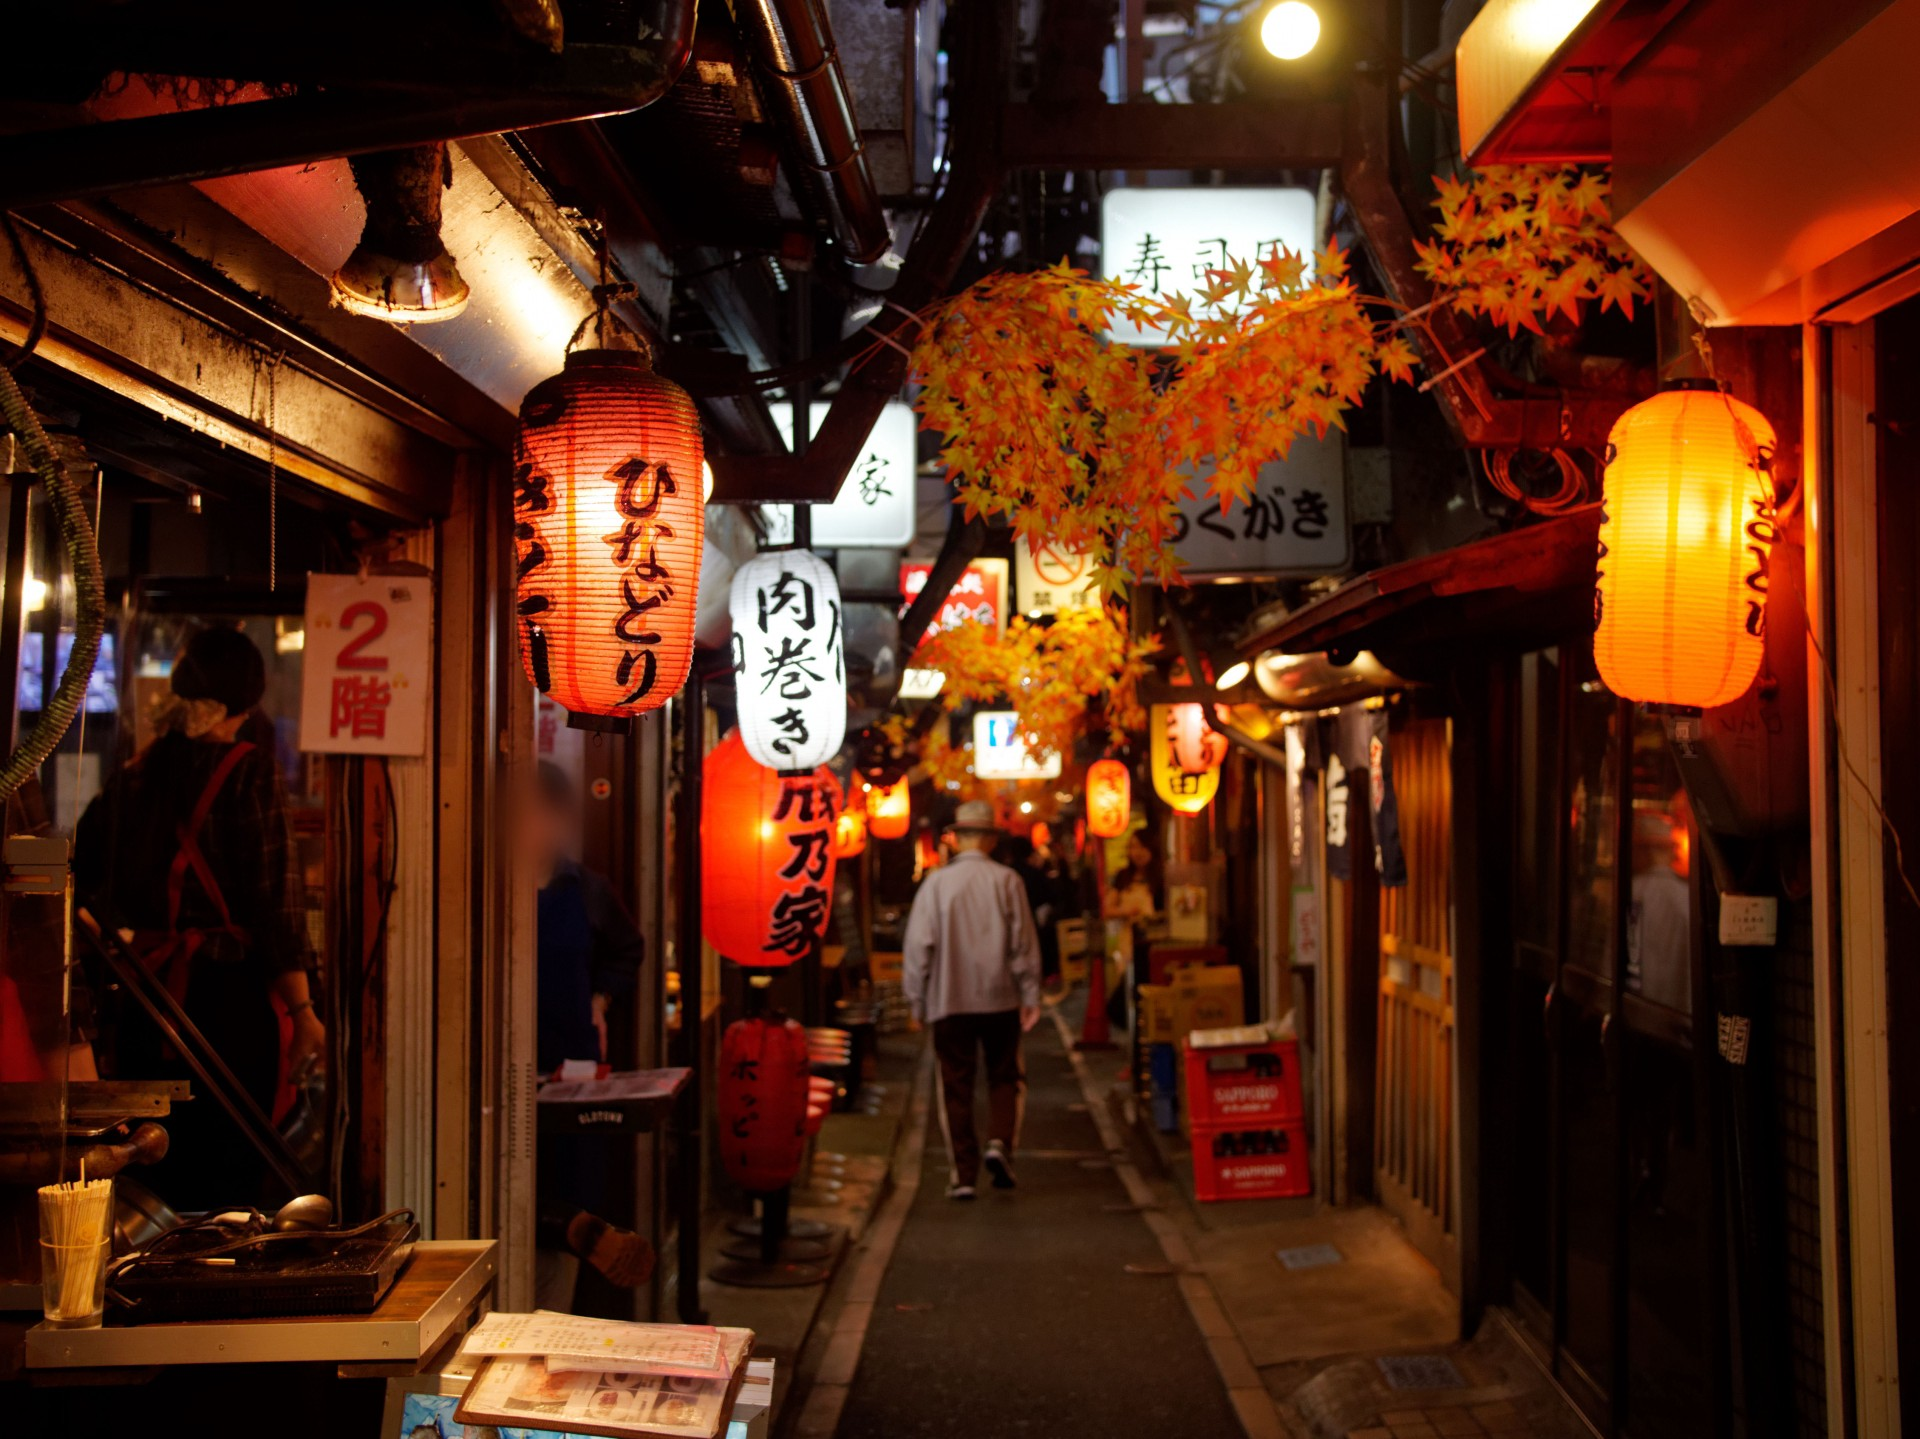 Side-street restaurants in Japan